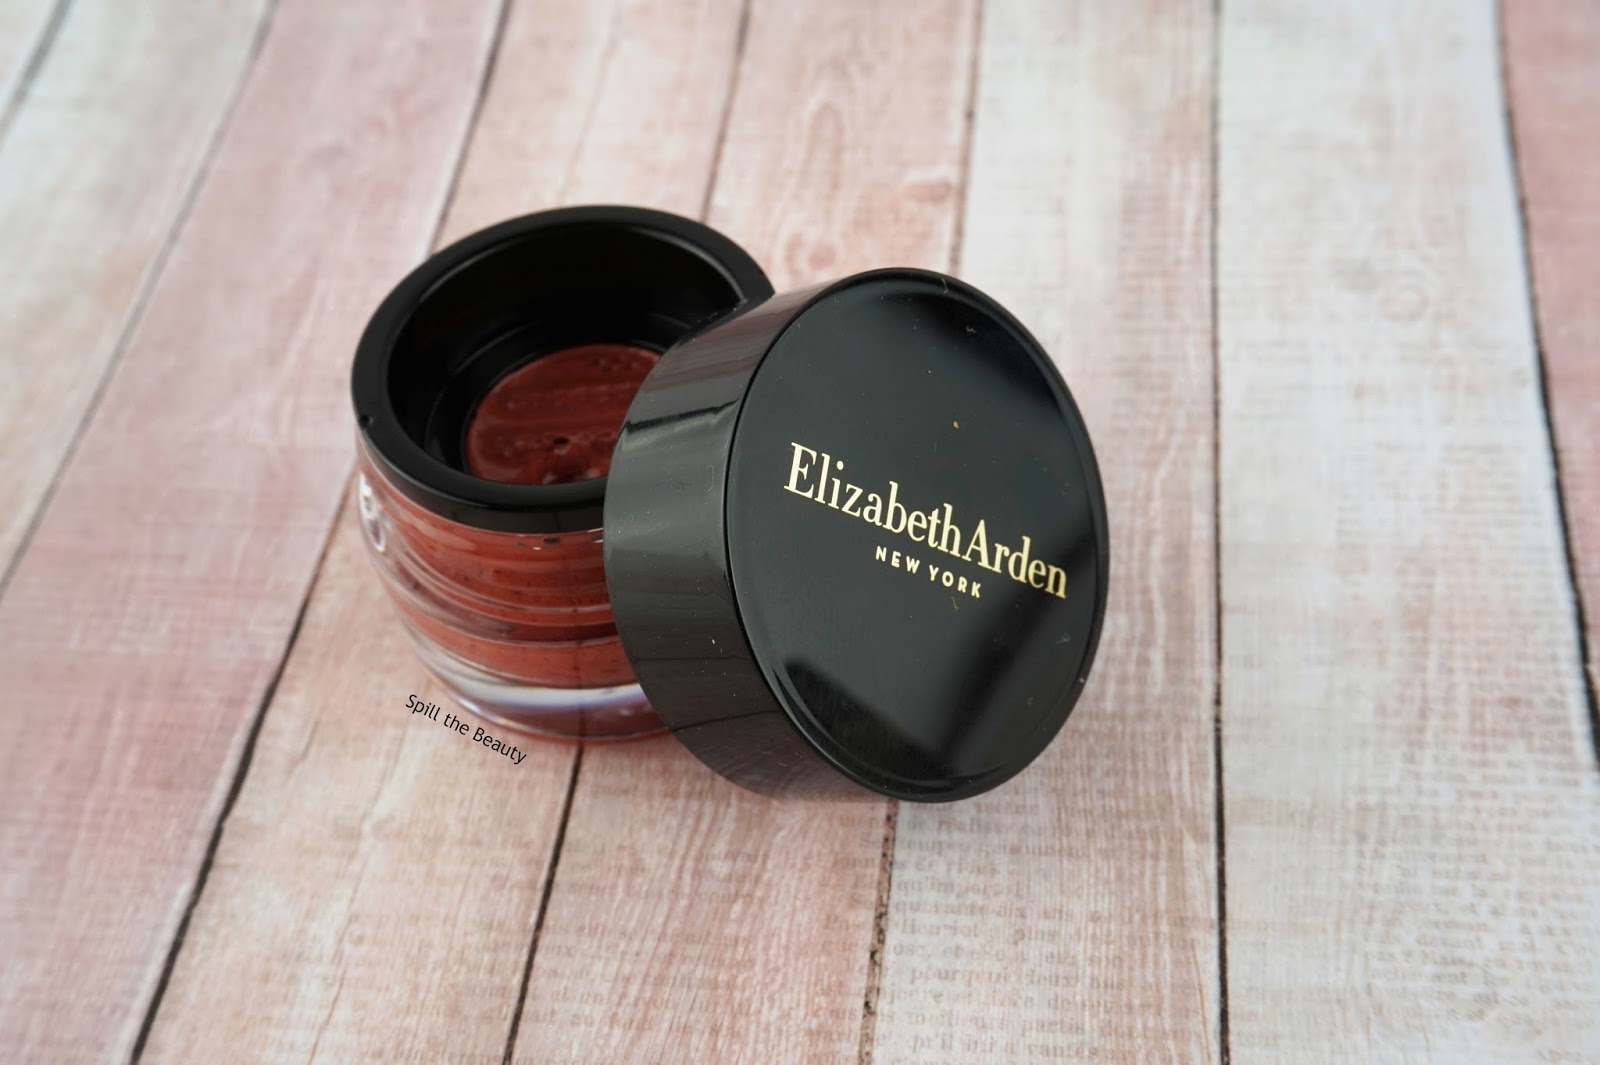 elizabeth arden gelato crush collection review swatches bare kiss fire red berry rush